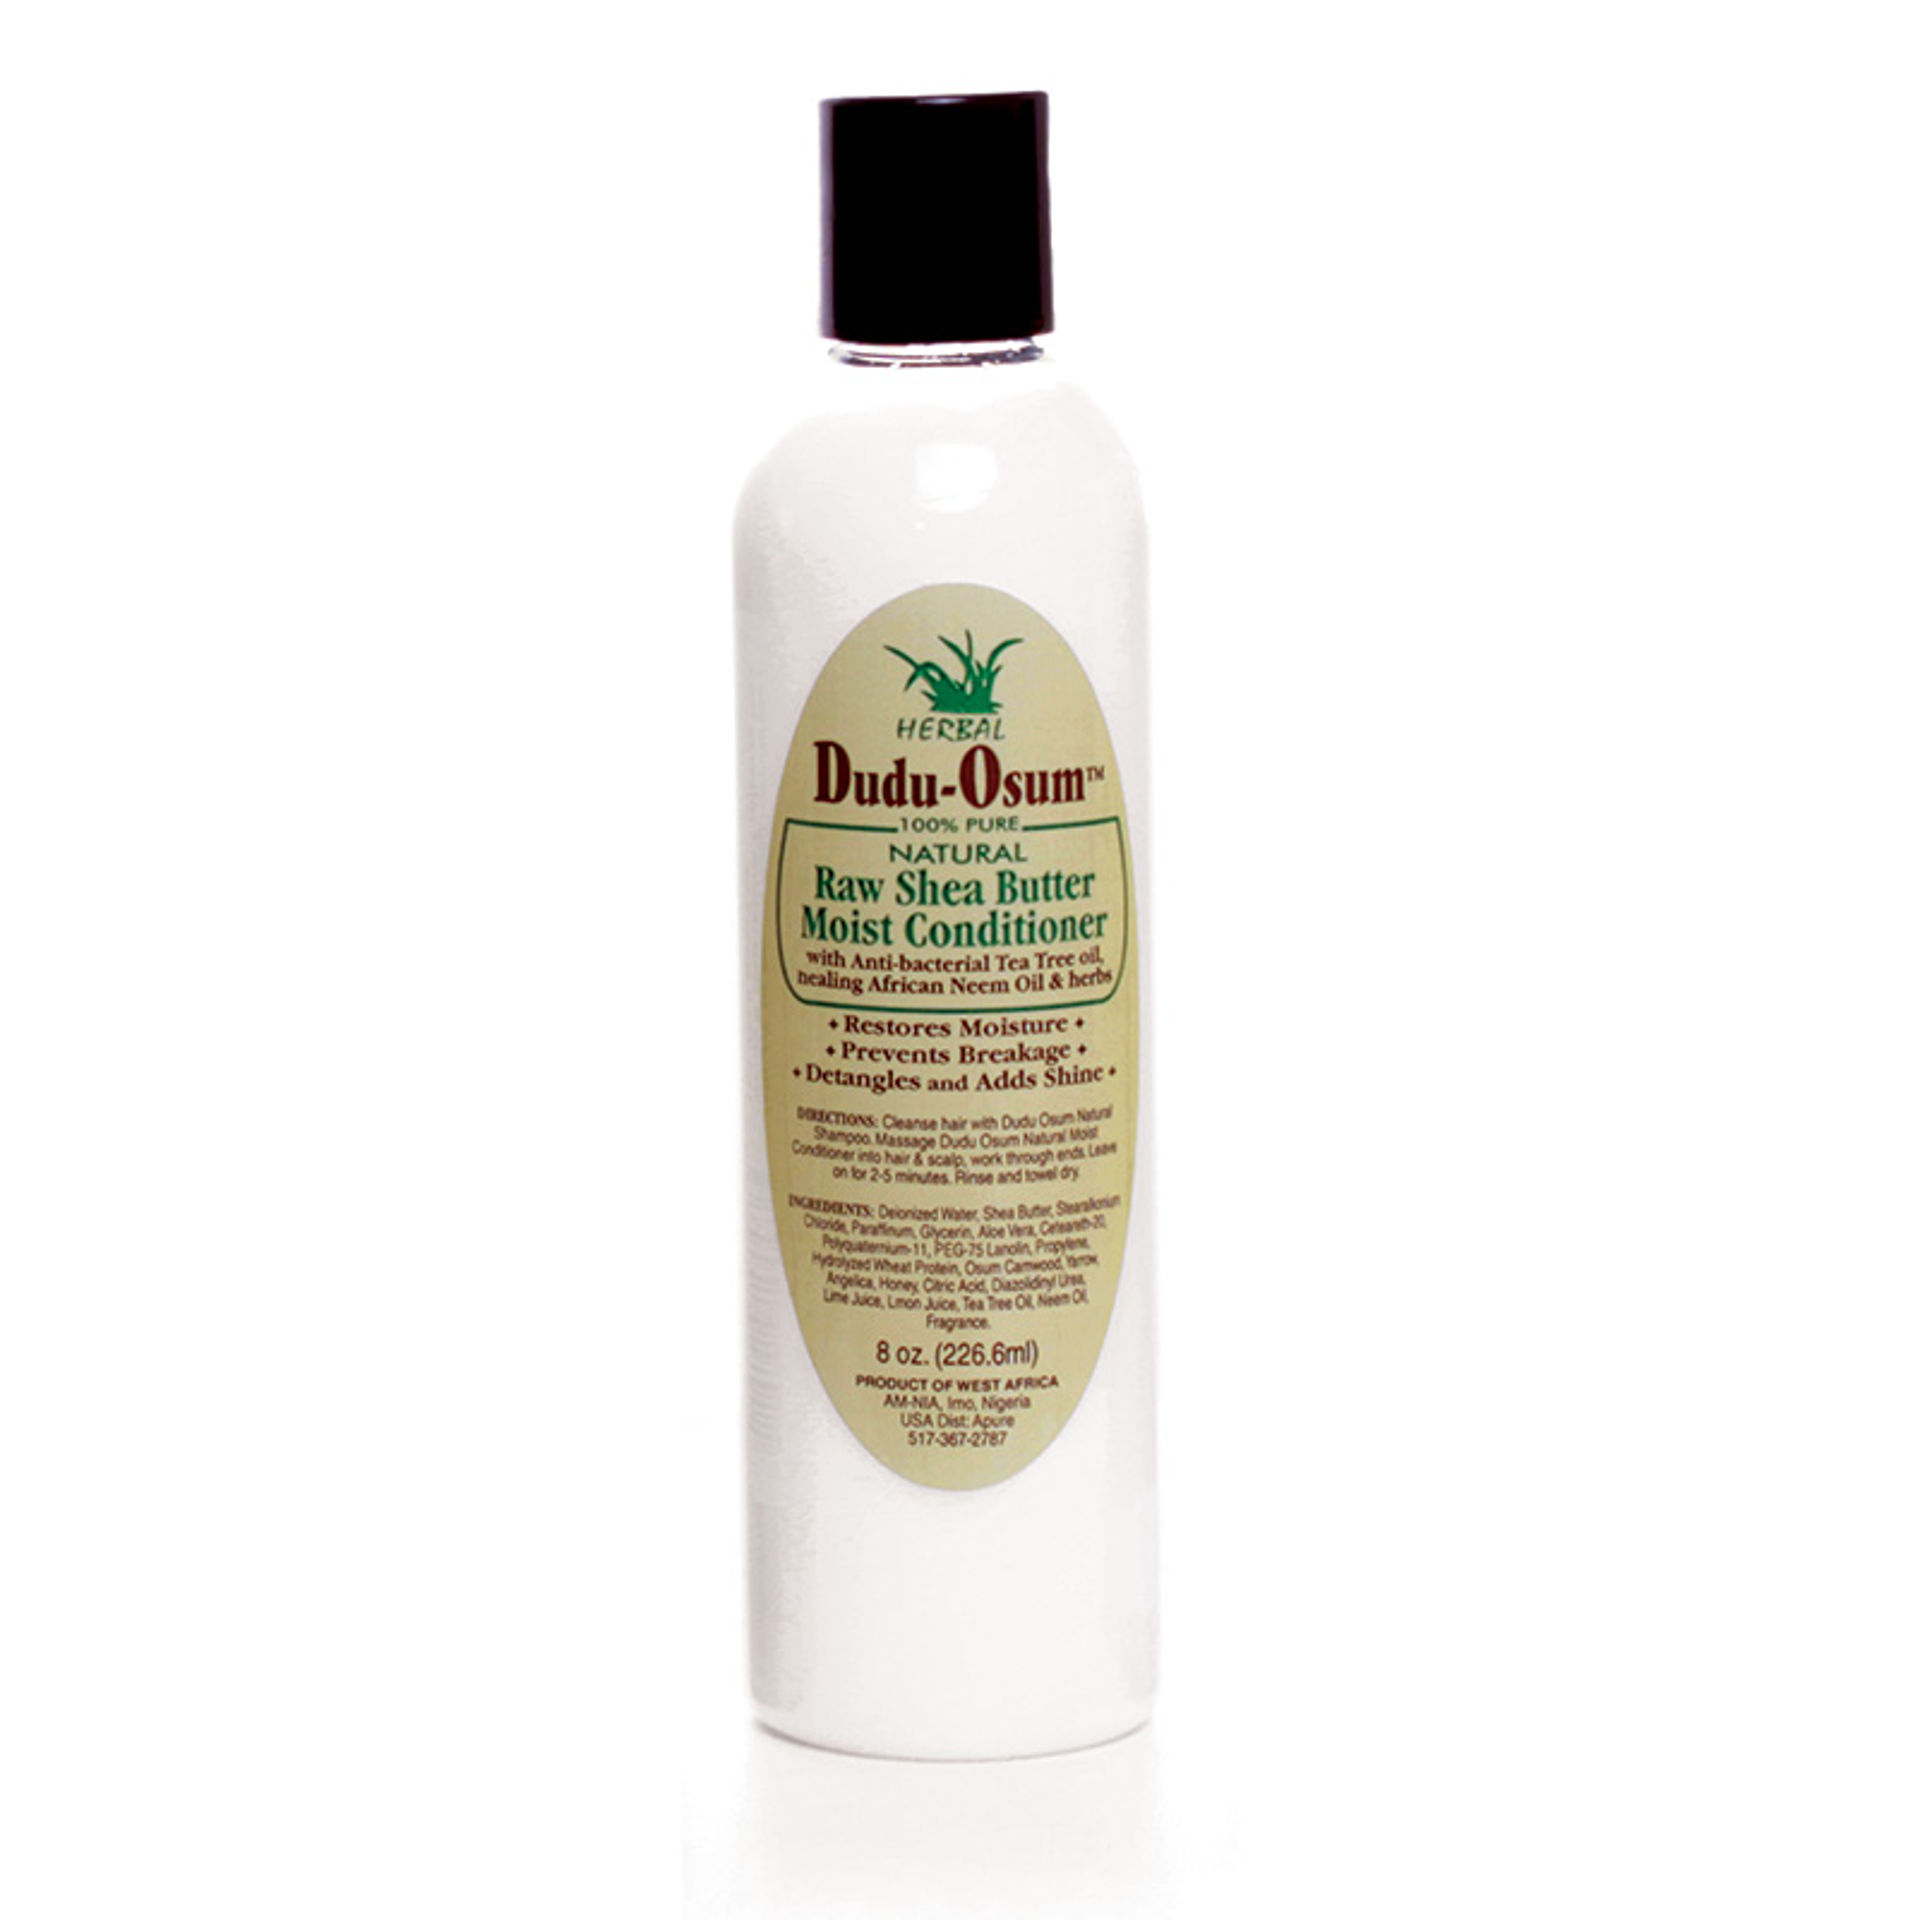 Picture of Dudu-Osum Natural Moist Conditioner